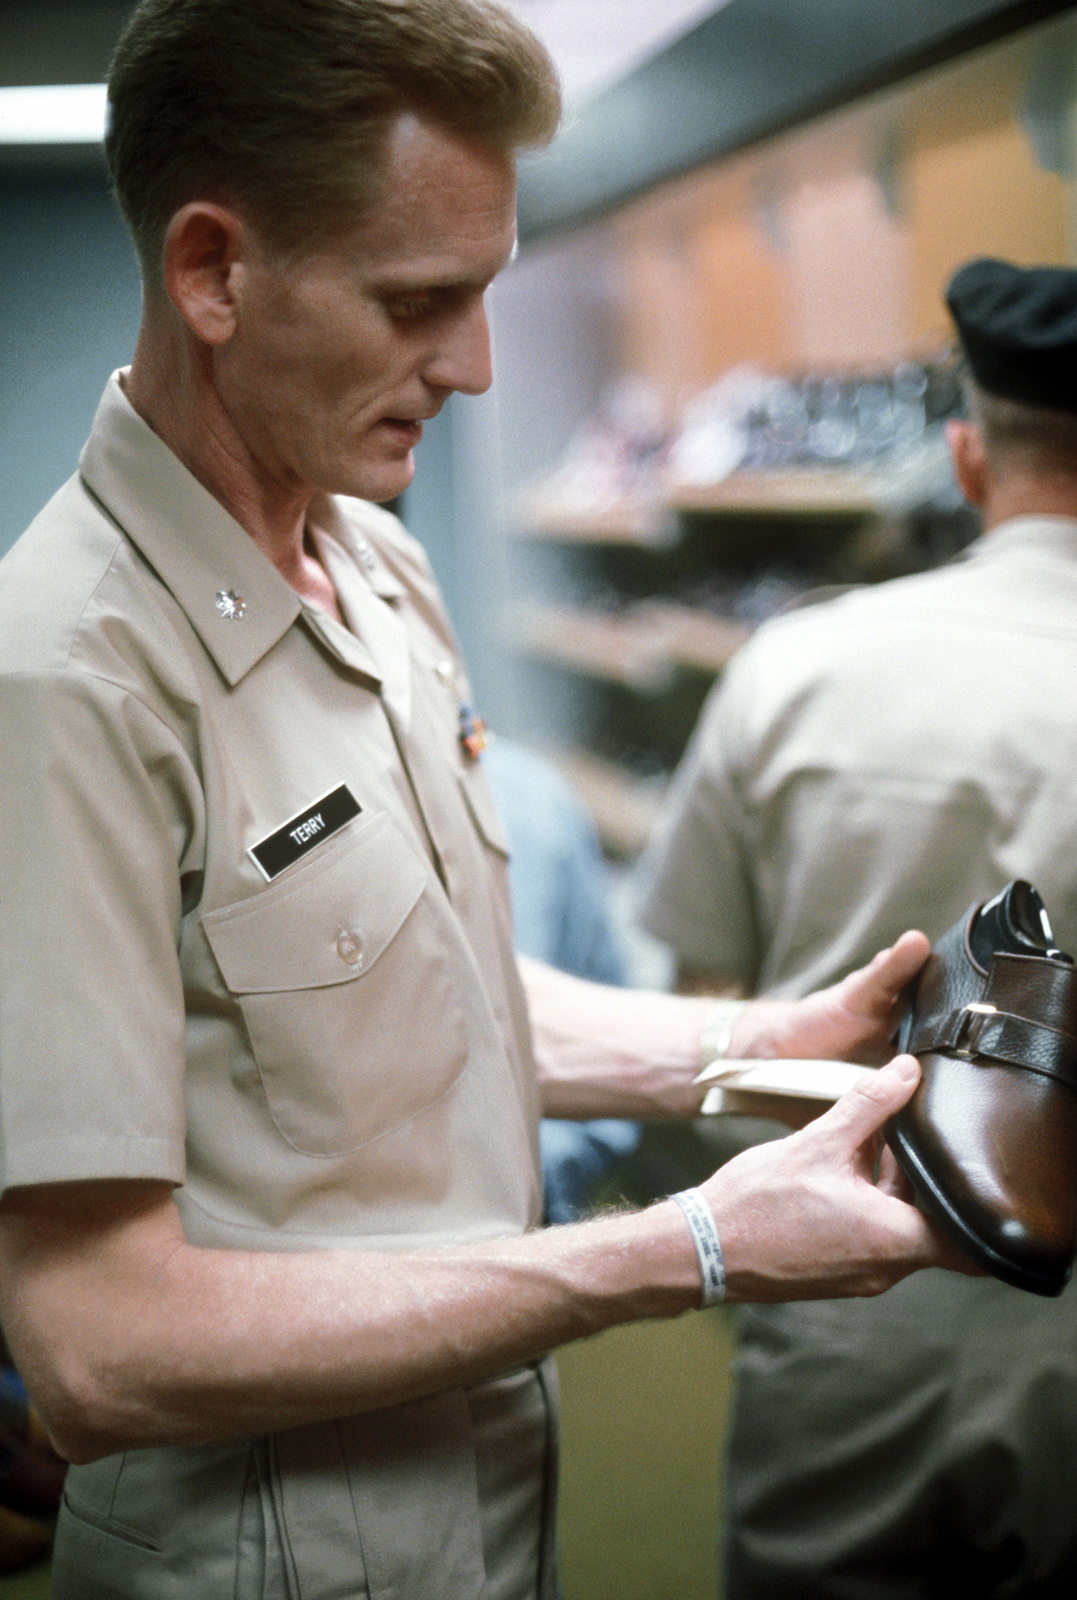 CDR Ross Terry looks at shoes at the base exchange shortly after being released from a prisoner of war camp in Vietnam